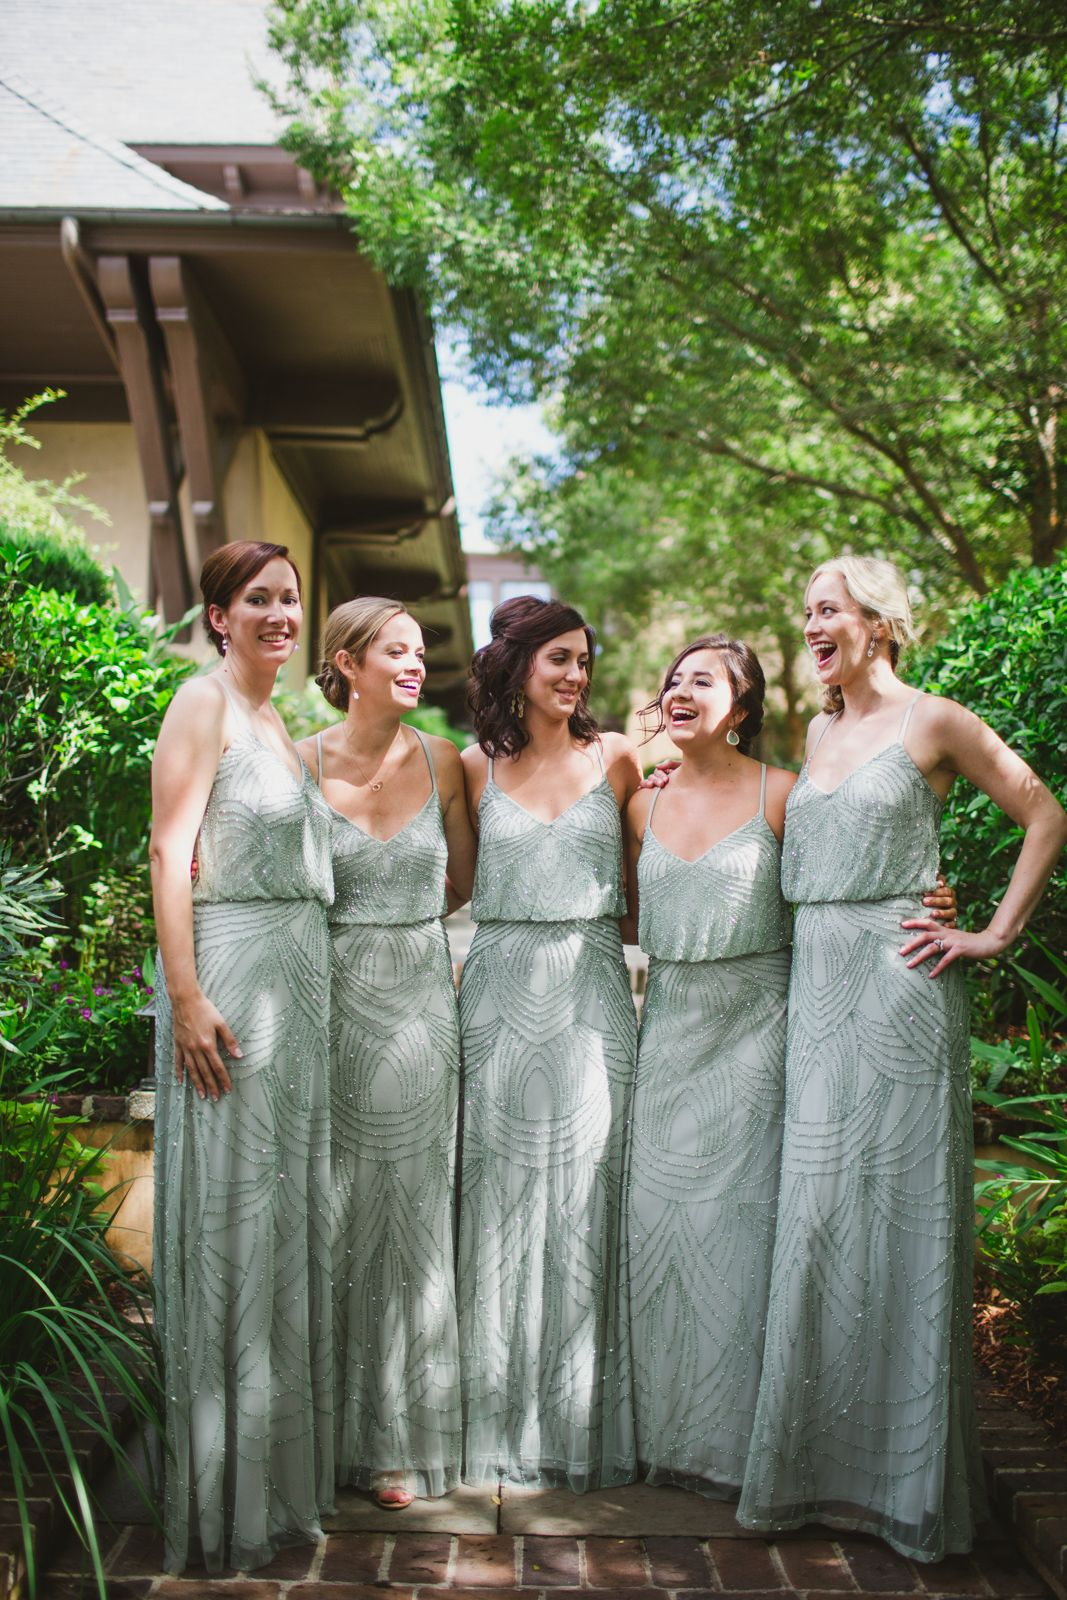 Mint adrianna papell bridesmaids dresses adrianna papell mint adrianna papell bridesmaids dresses ombrellifo Image collections